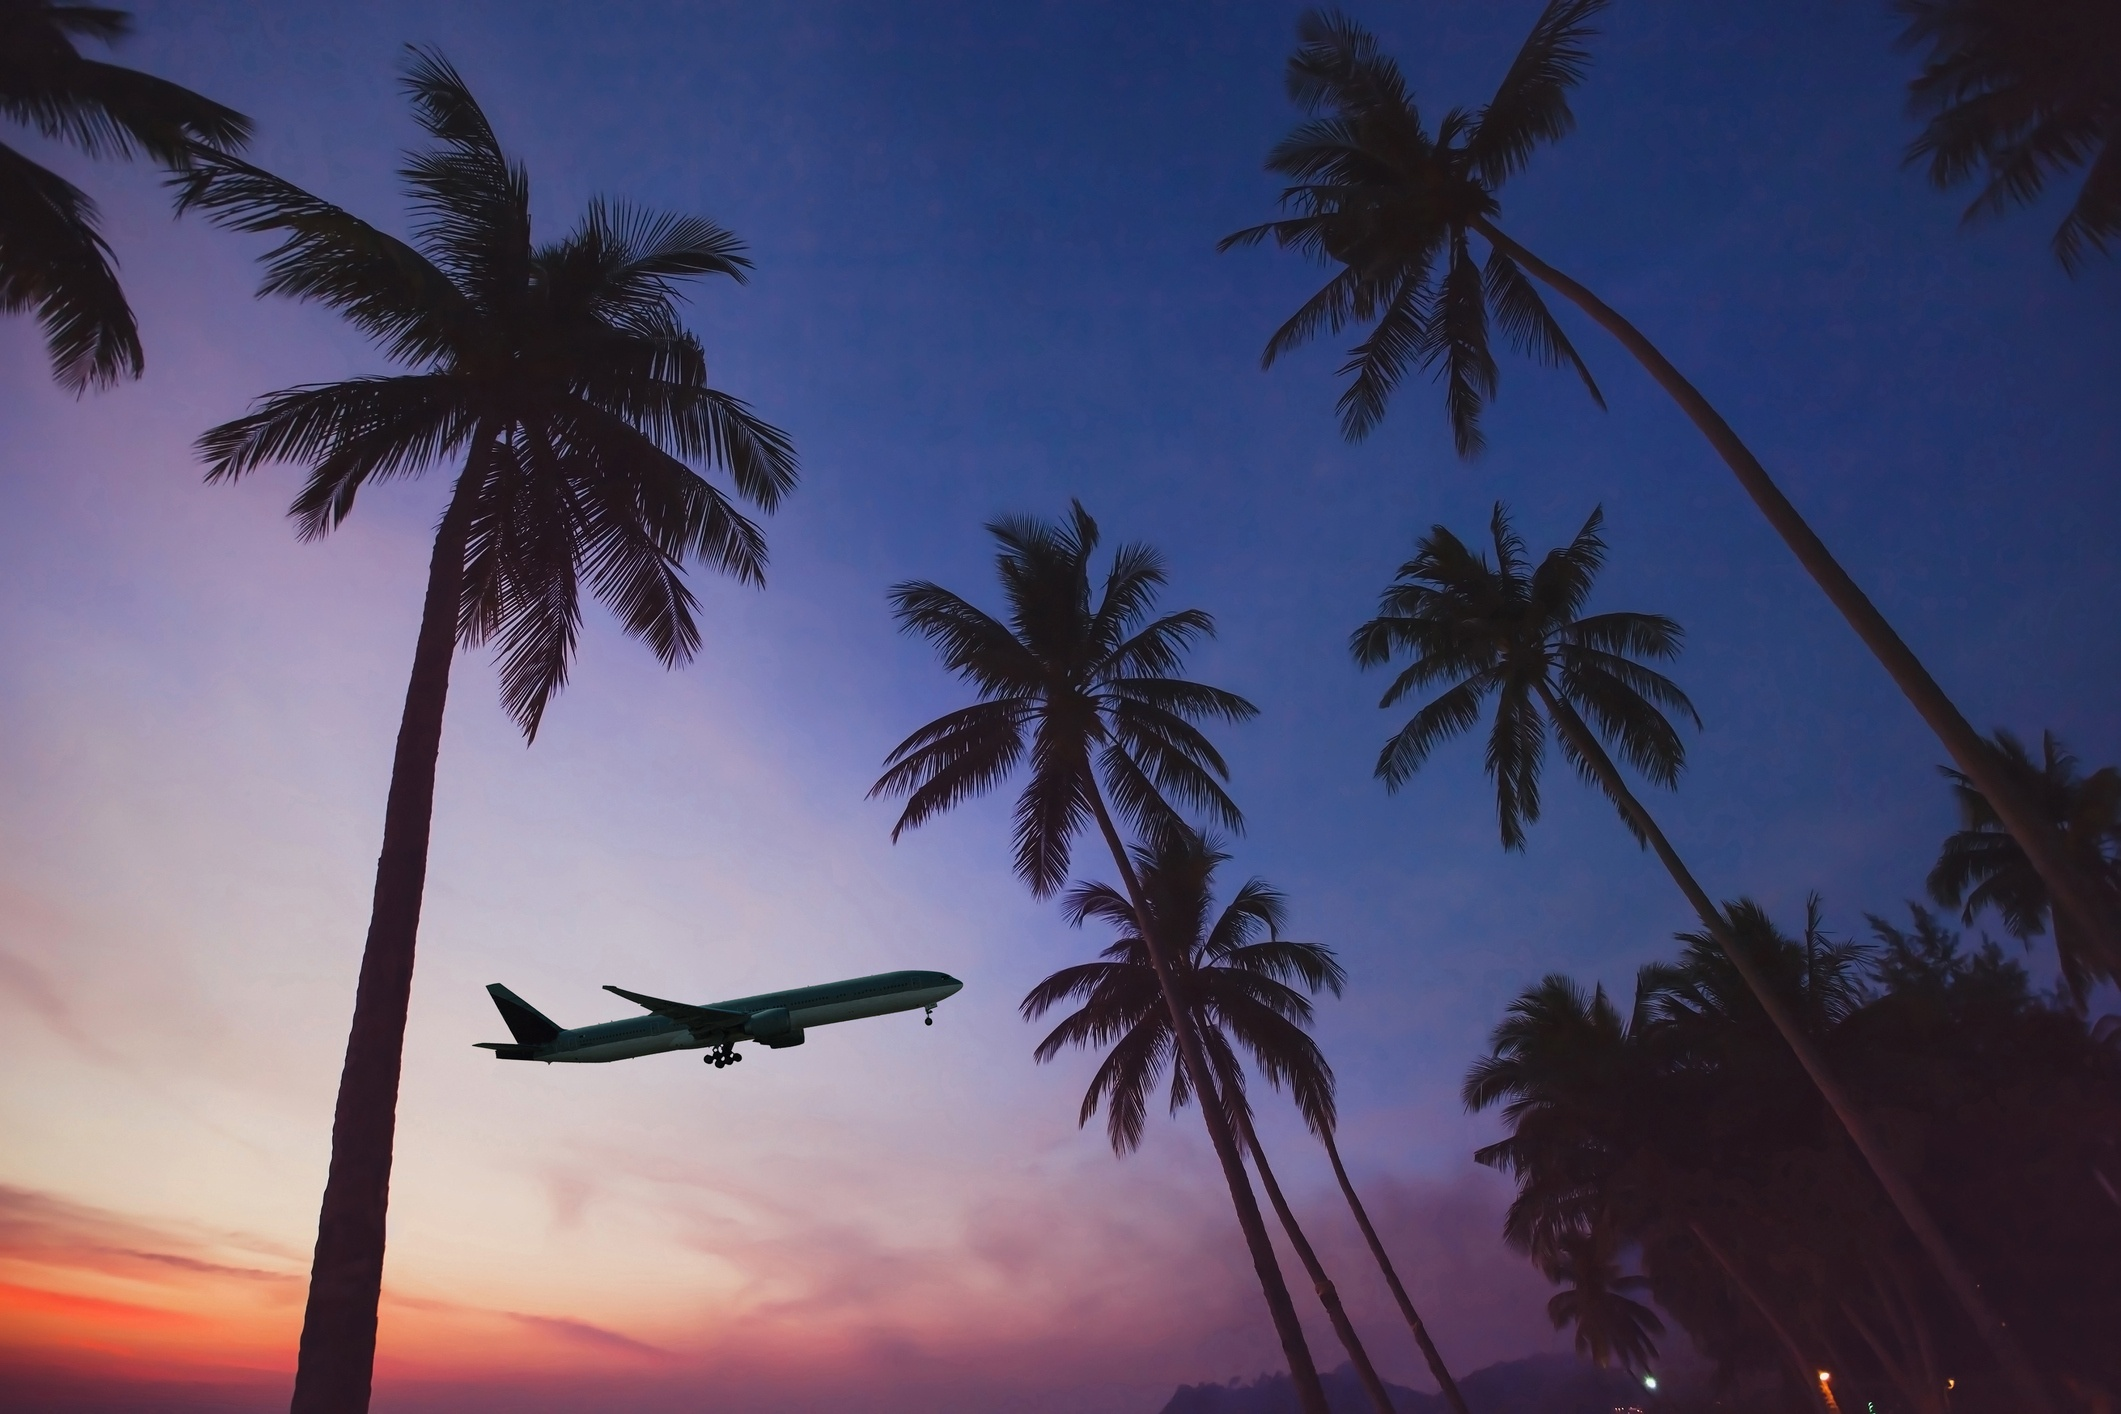 Airplane lifting off over palm trees at sunset